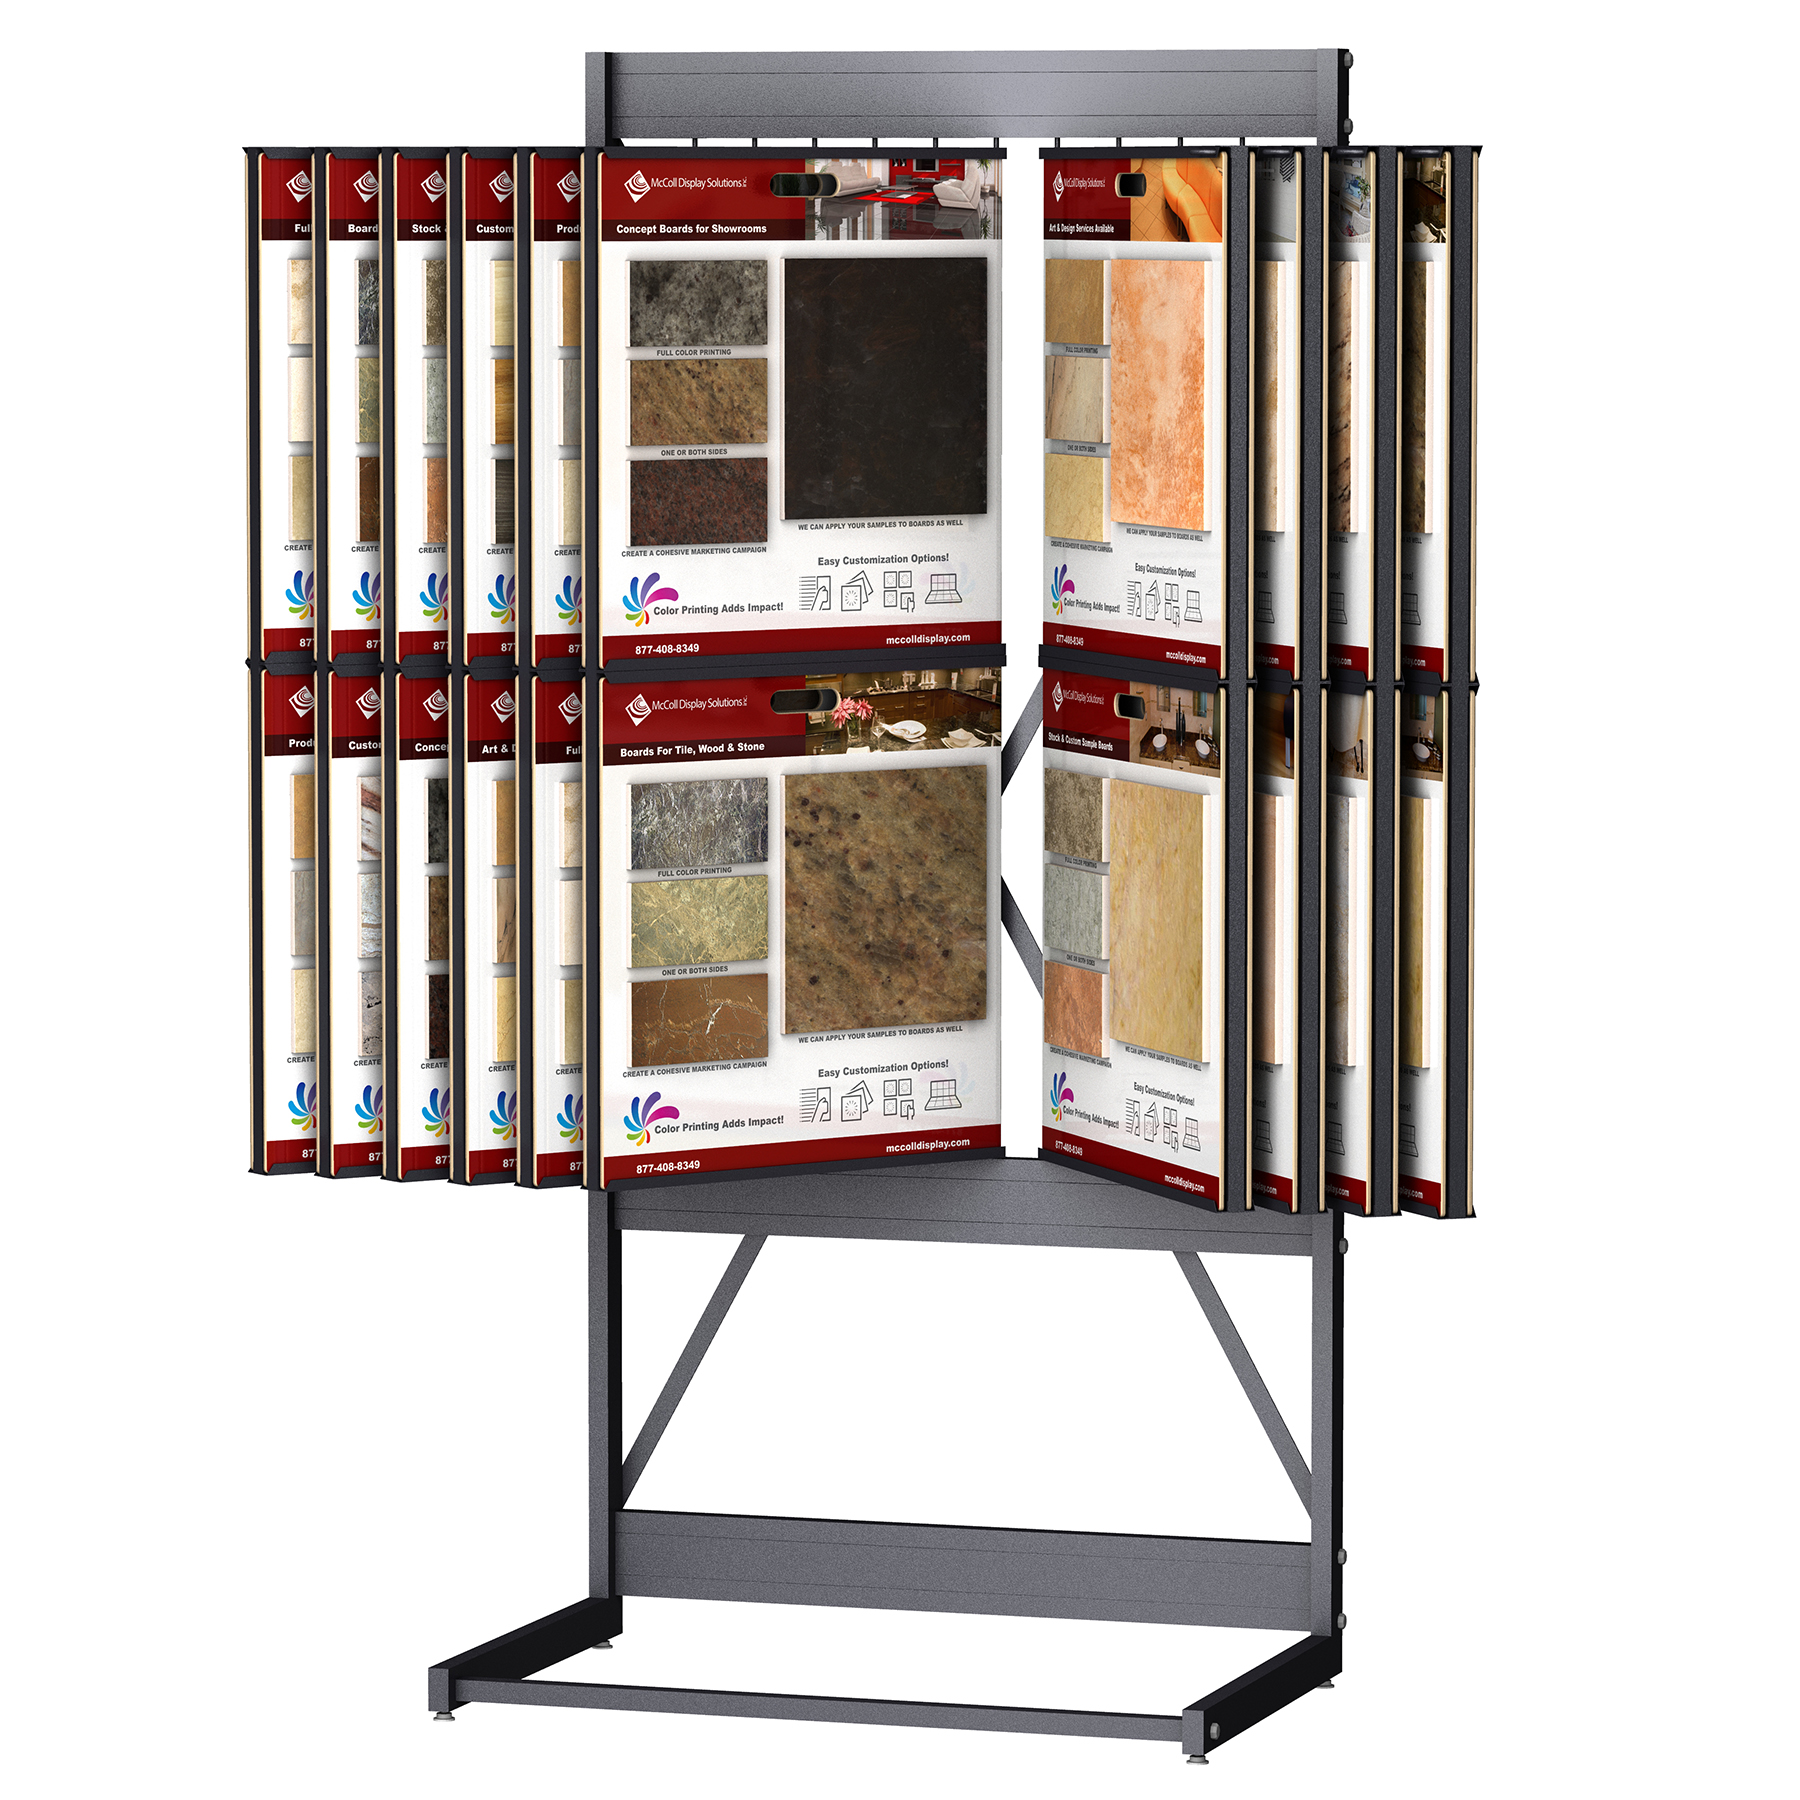 CD246 Wing Rack Tower Channel System for Sample Boards Display Tile Stone Marble Hardwood Showroom Fixture